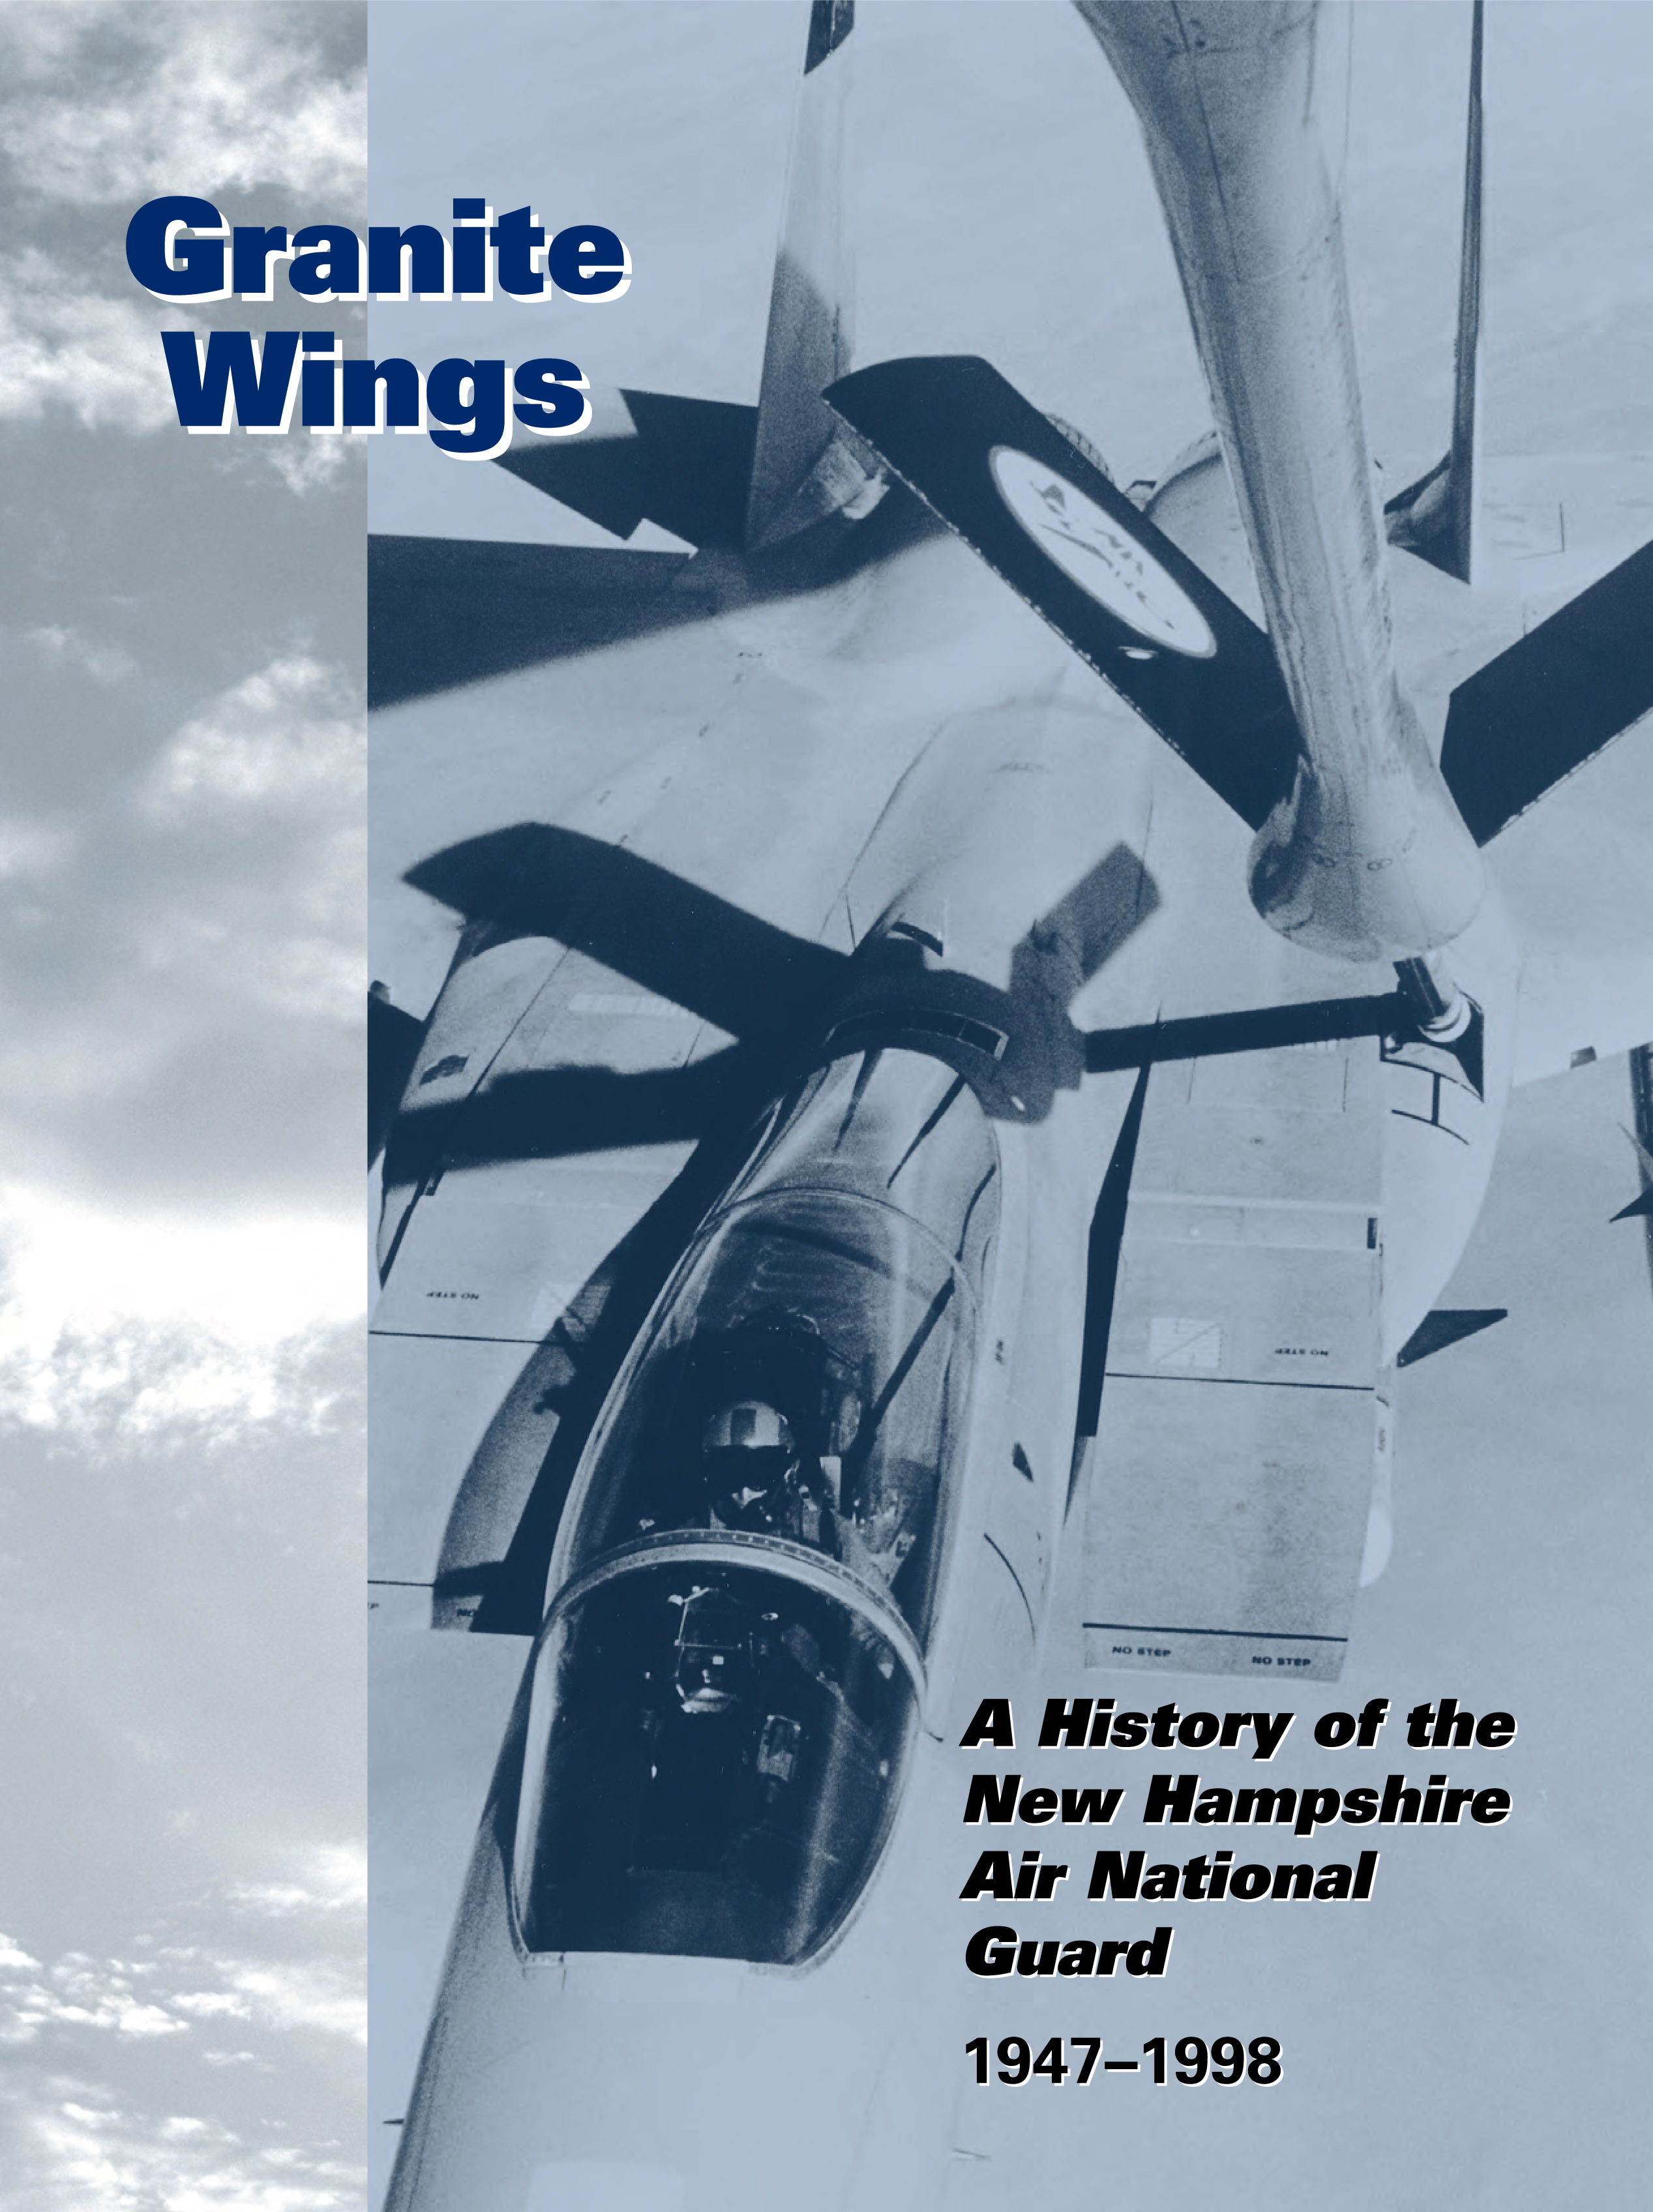 Granite Wings: History of the New Hampshire Air National Guard from 1947 to 1998